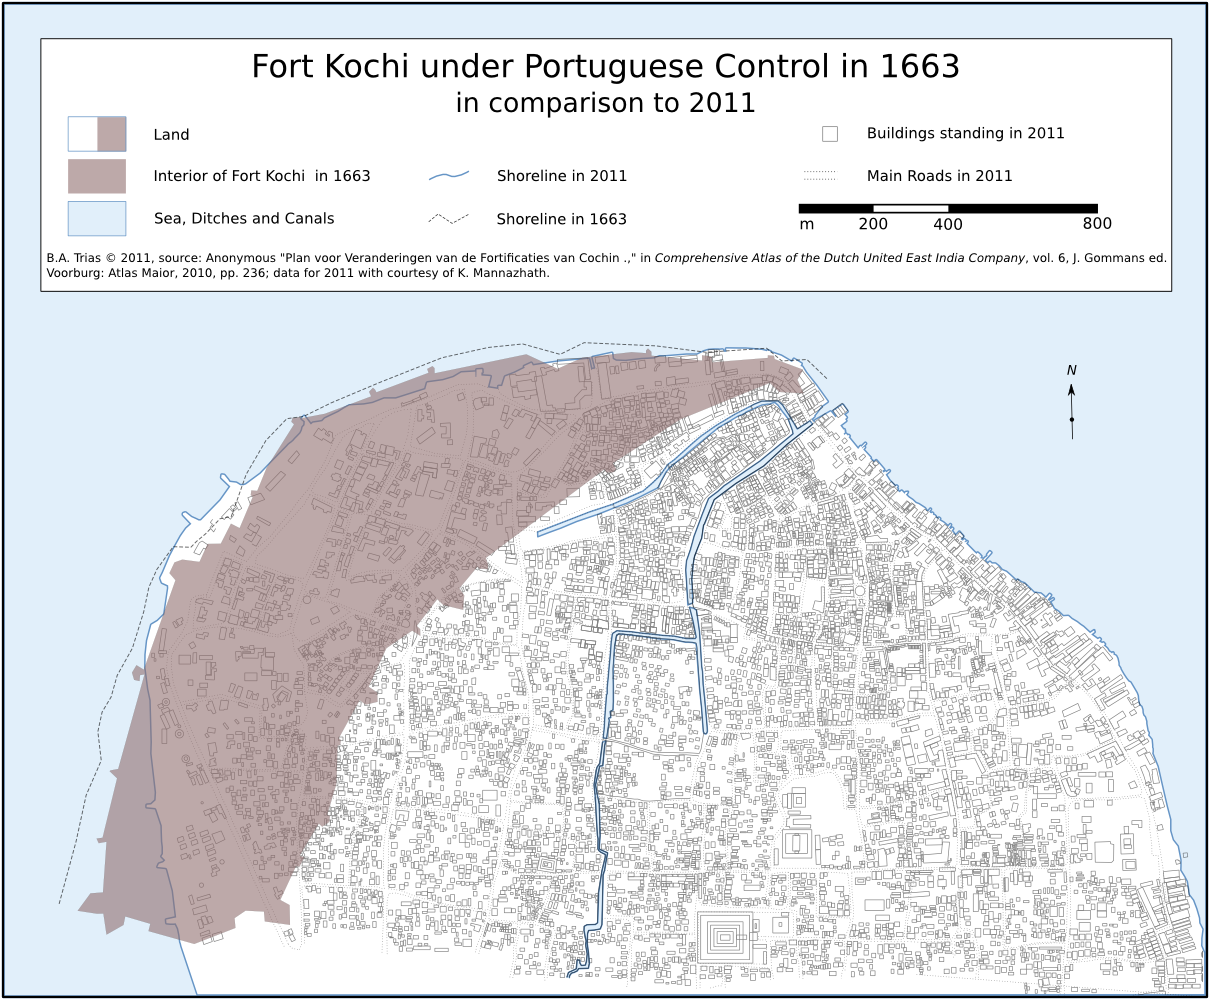 Fort Kochi under Control of the Kingdom of Portugal 1663